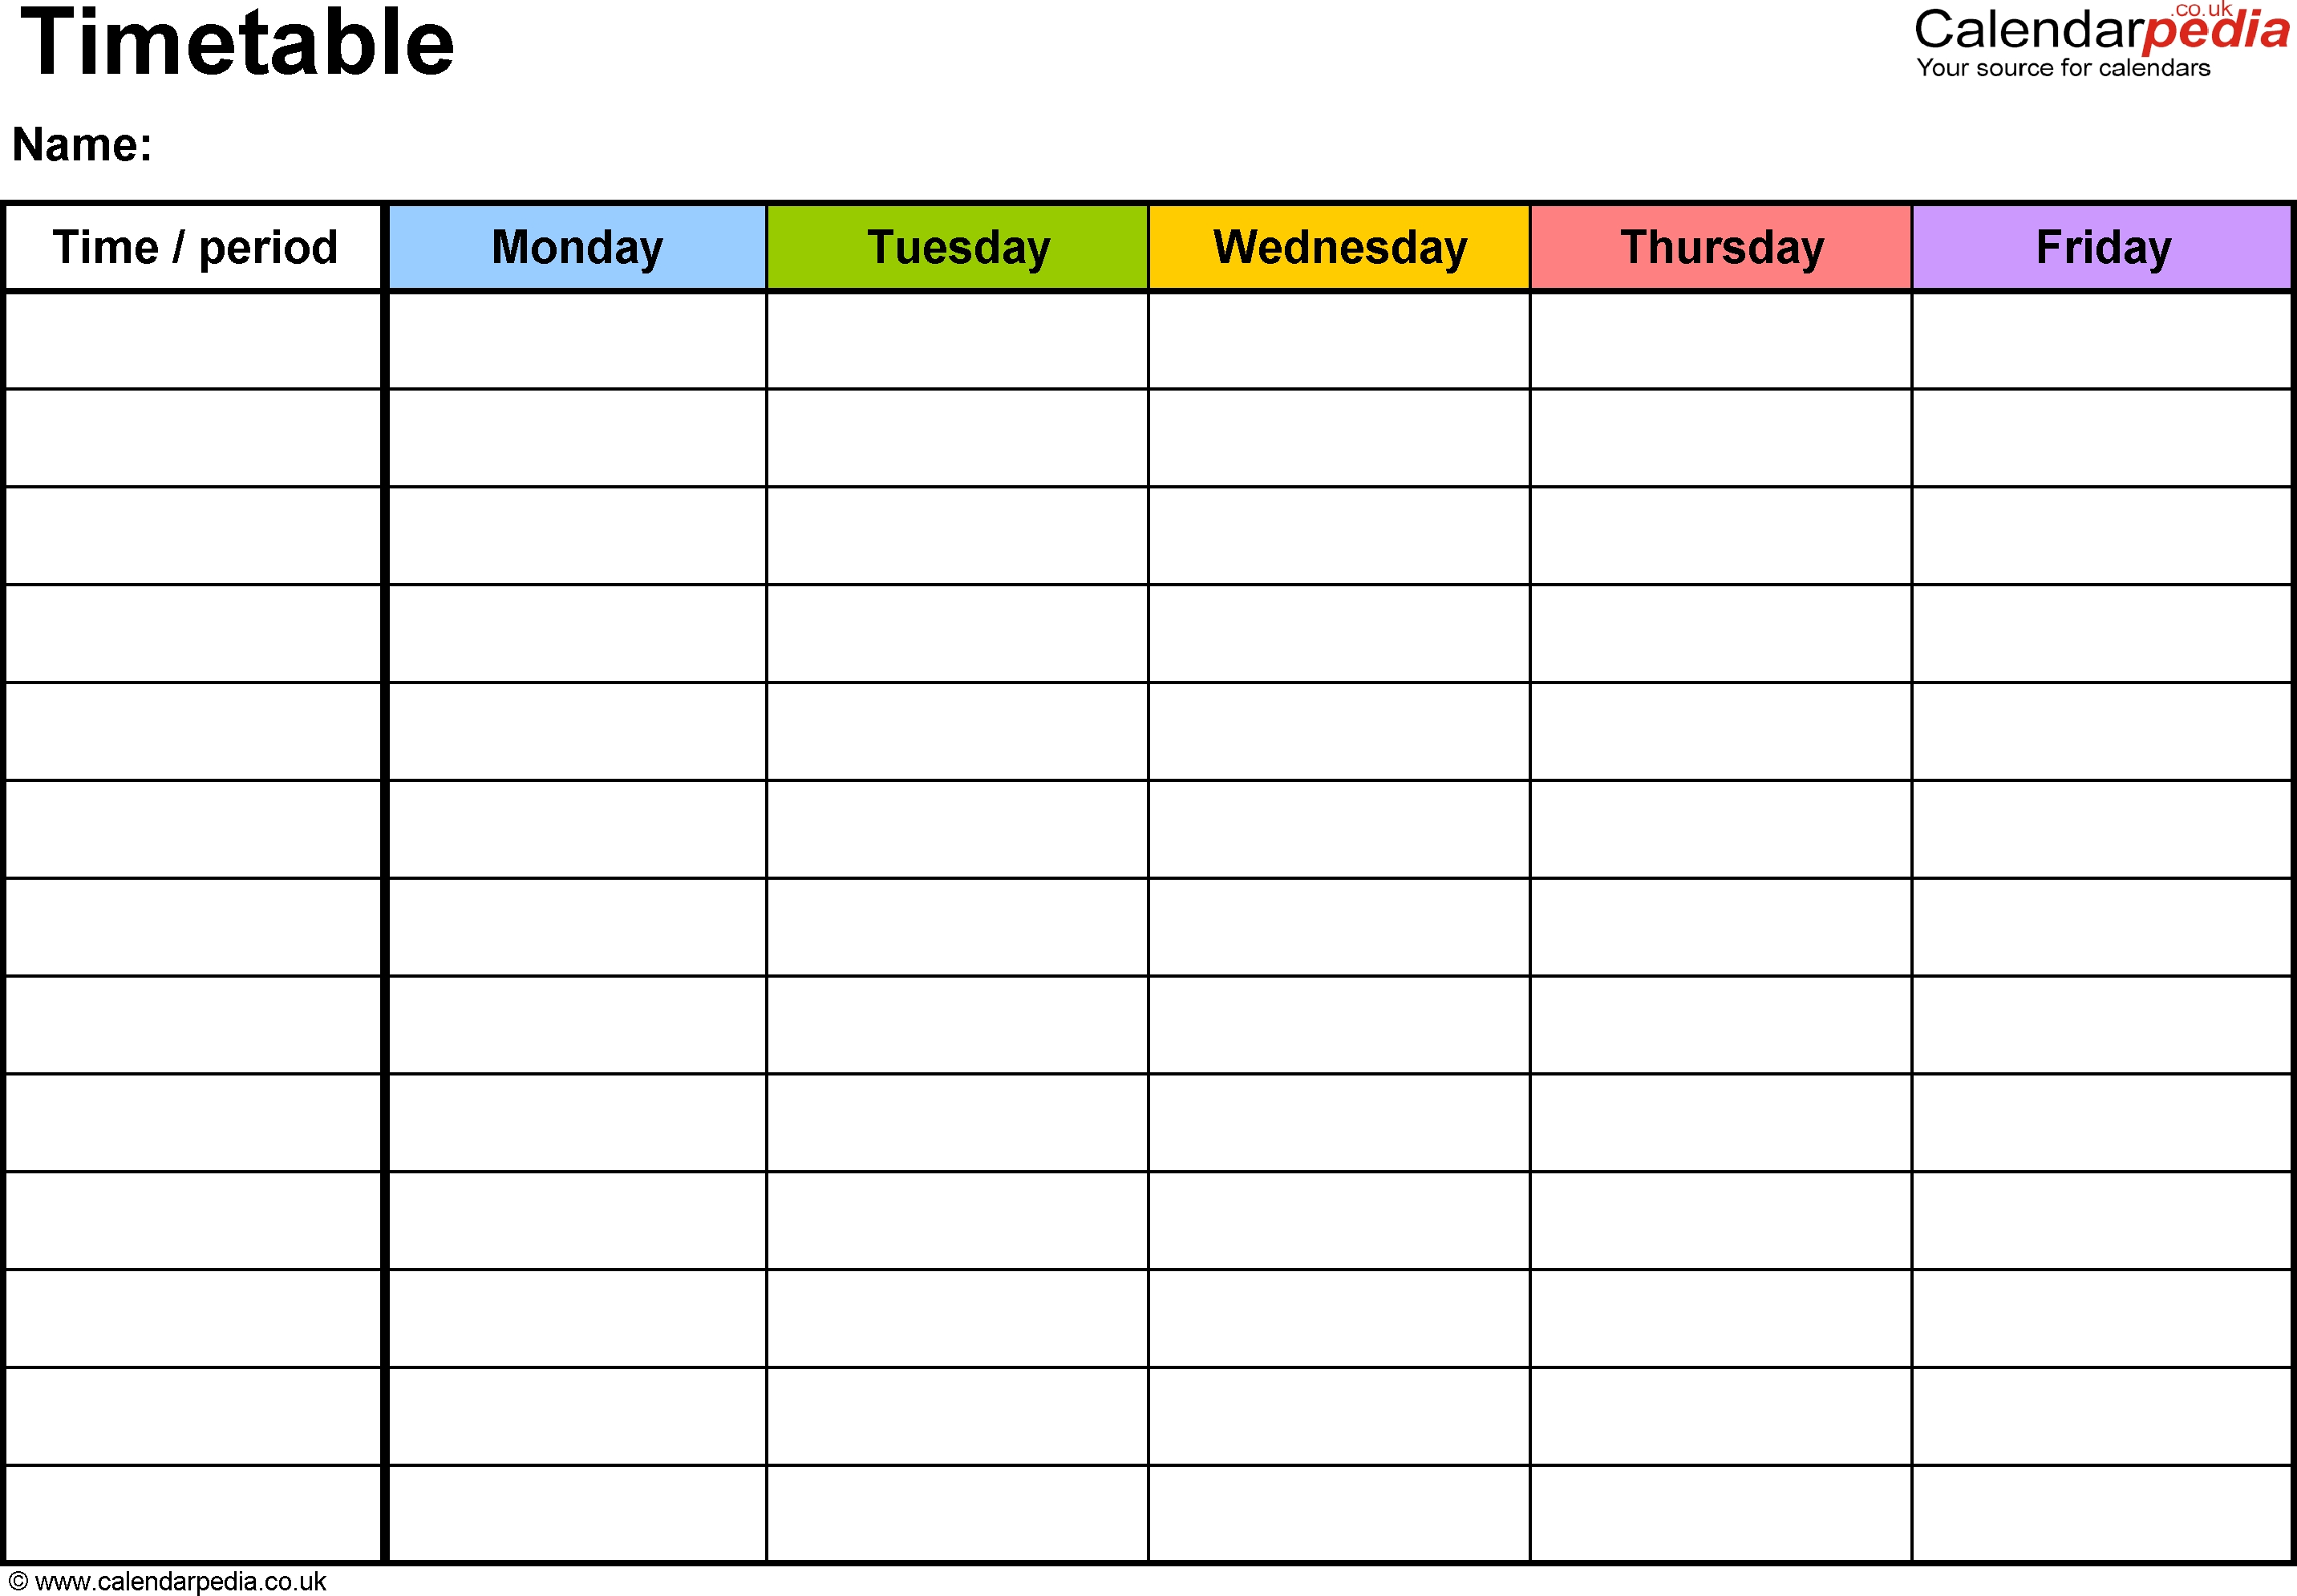 Pdf Timetable Template 2: Landscape Format, A4, 1 Page  Monday Through Friday Scheule Pdf